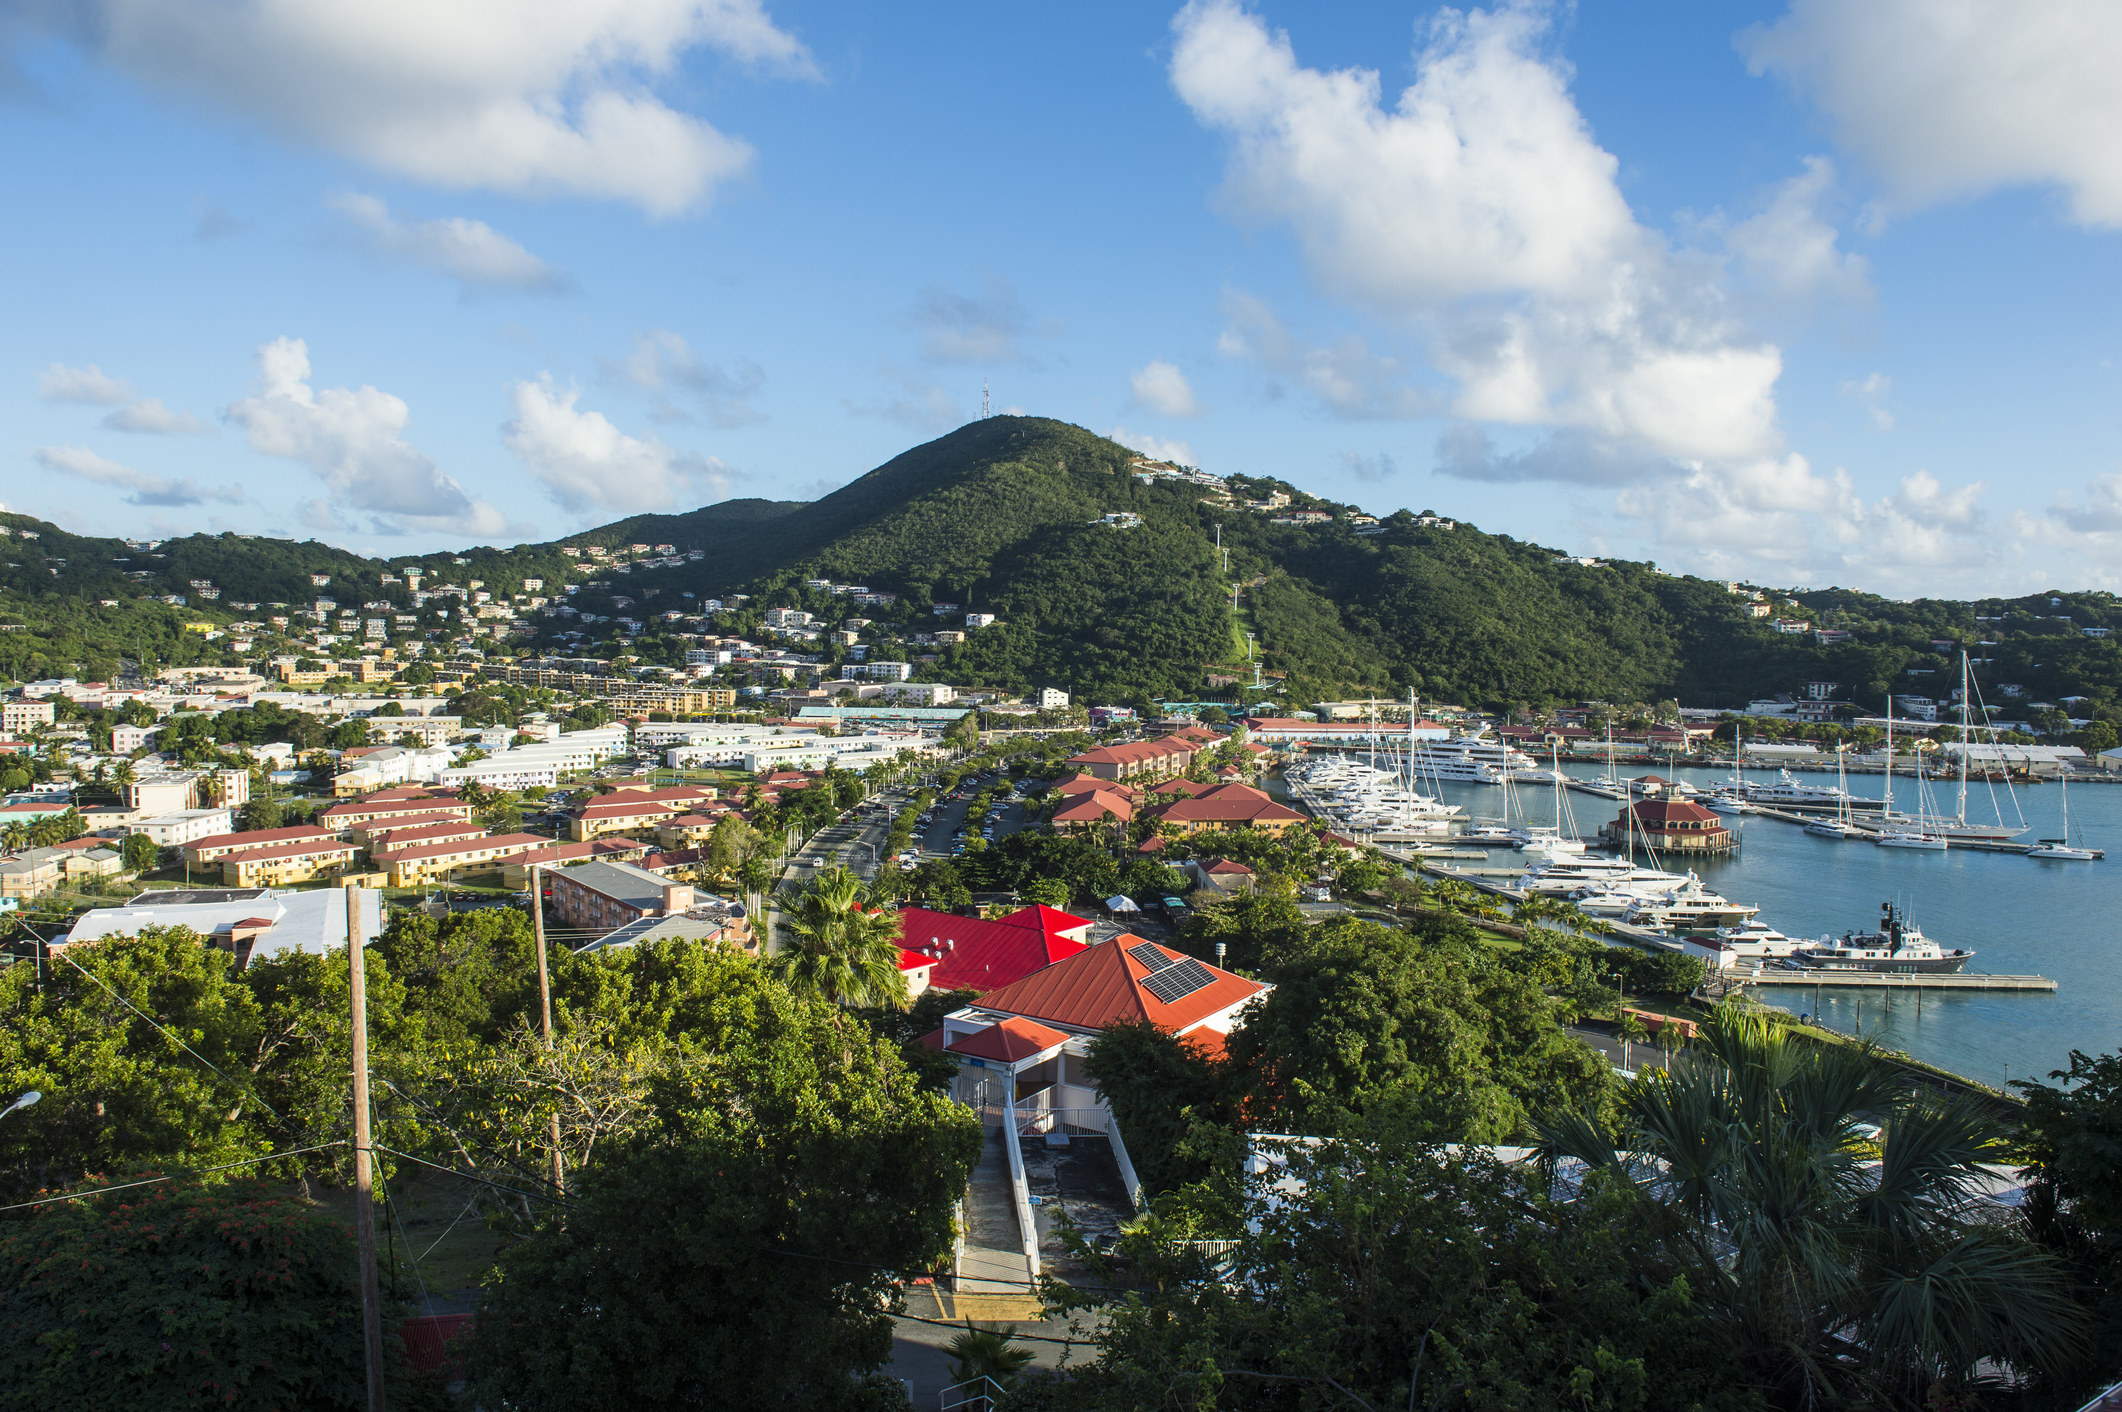 A beach view fromCharlotte Amalie located on St. Thomas.